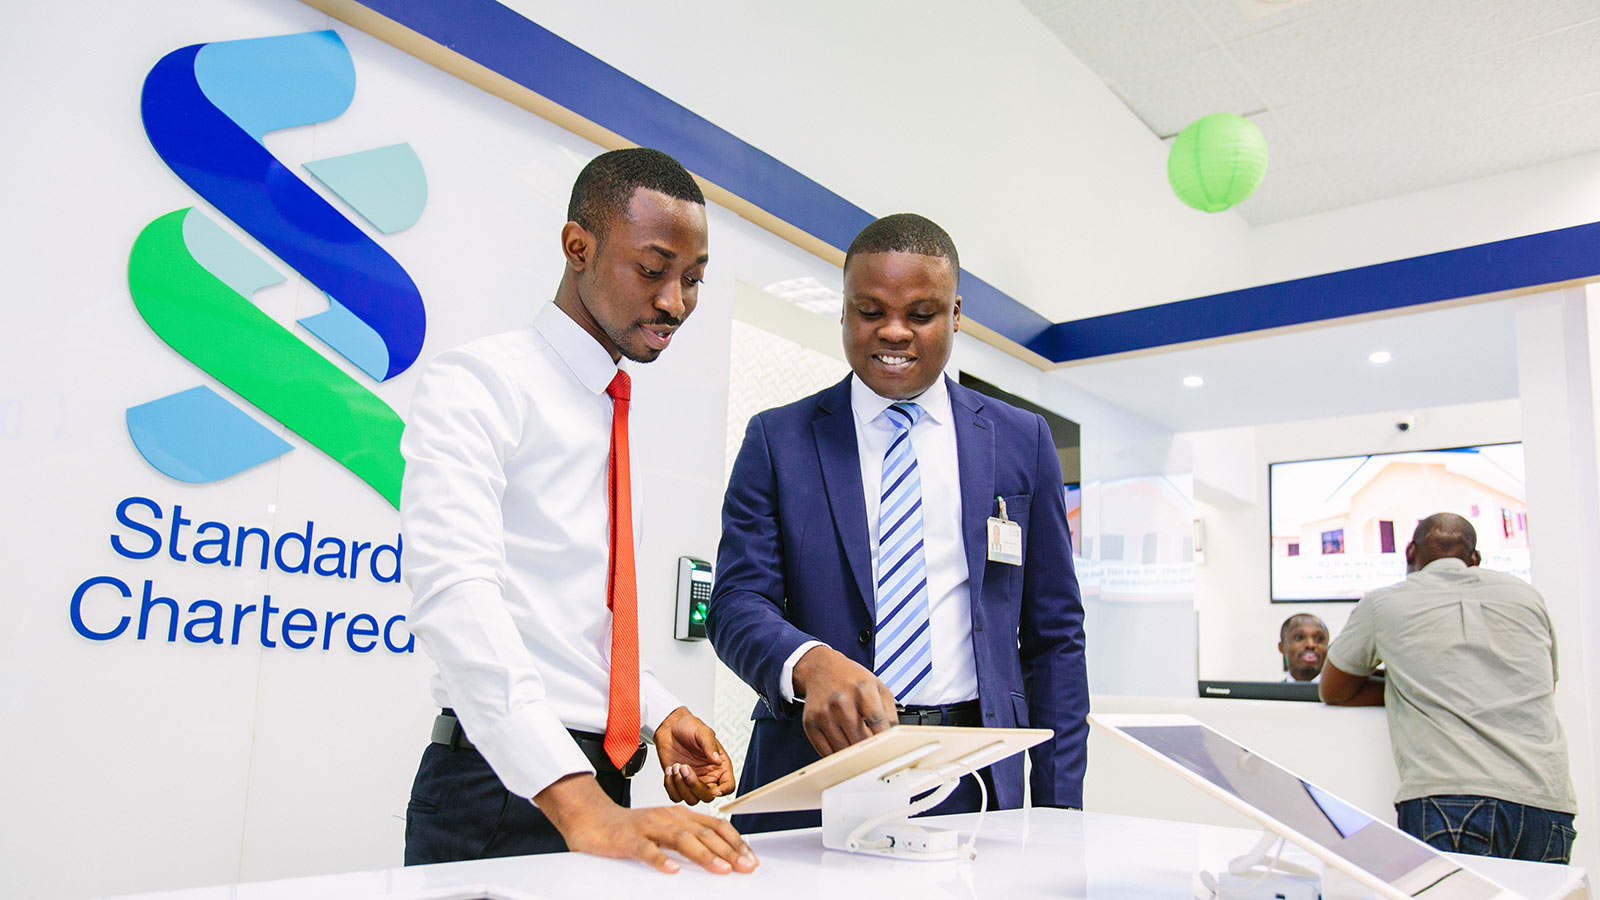 Standard Chartered Bank image